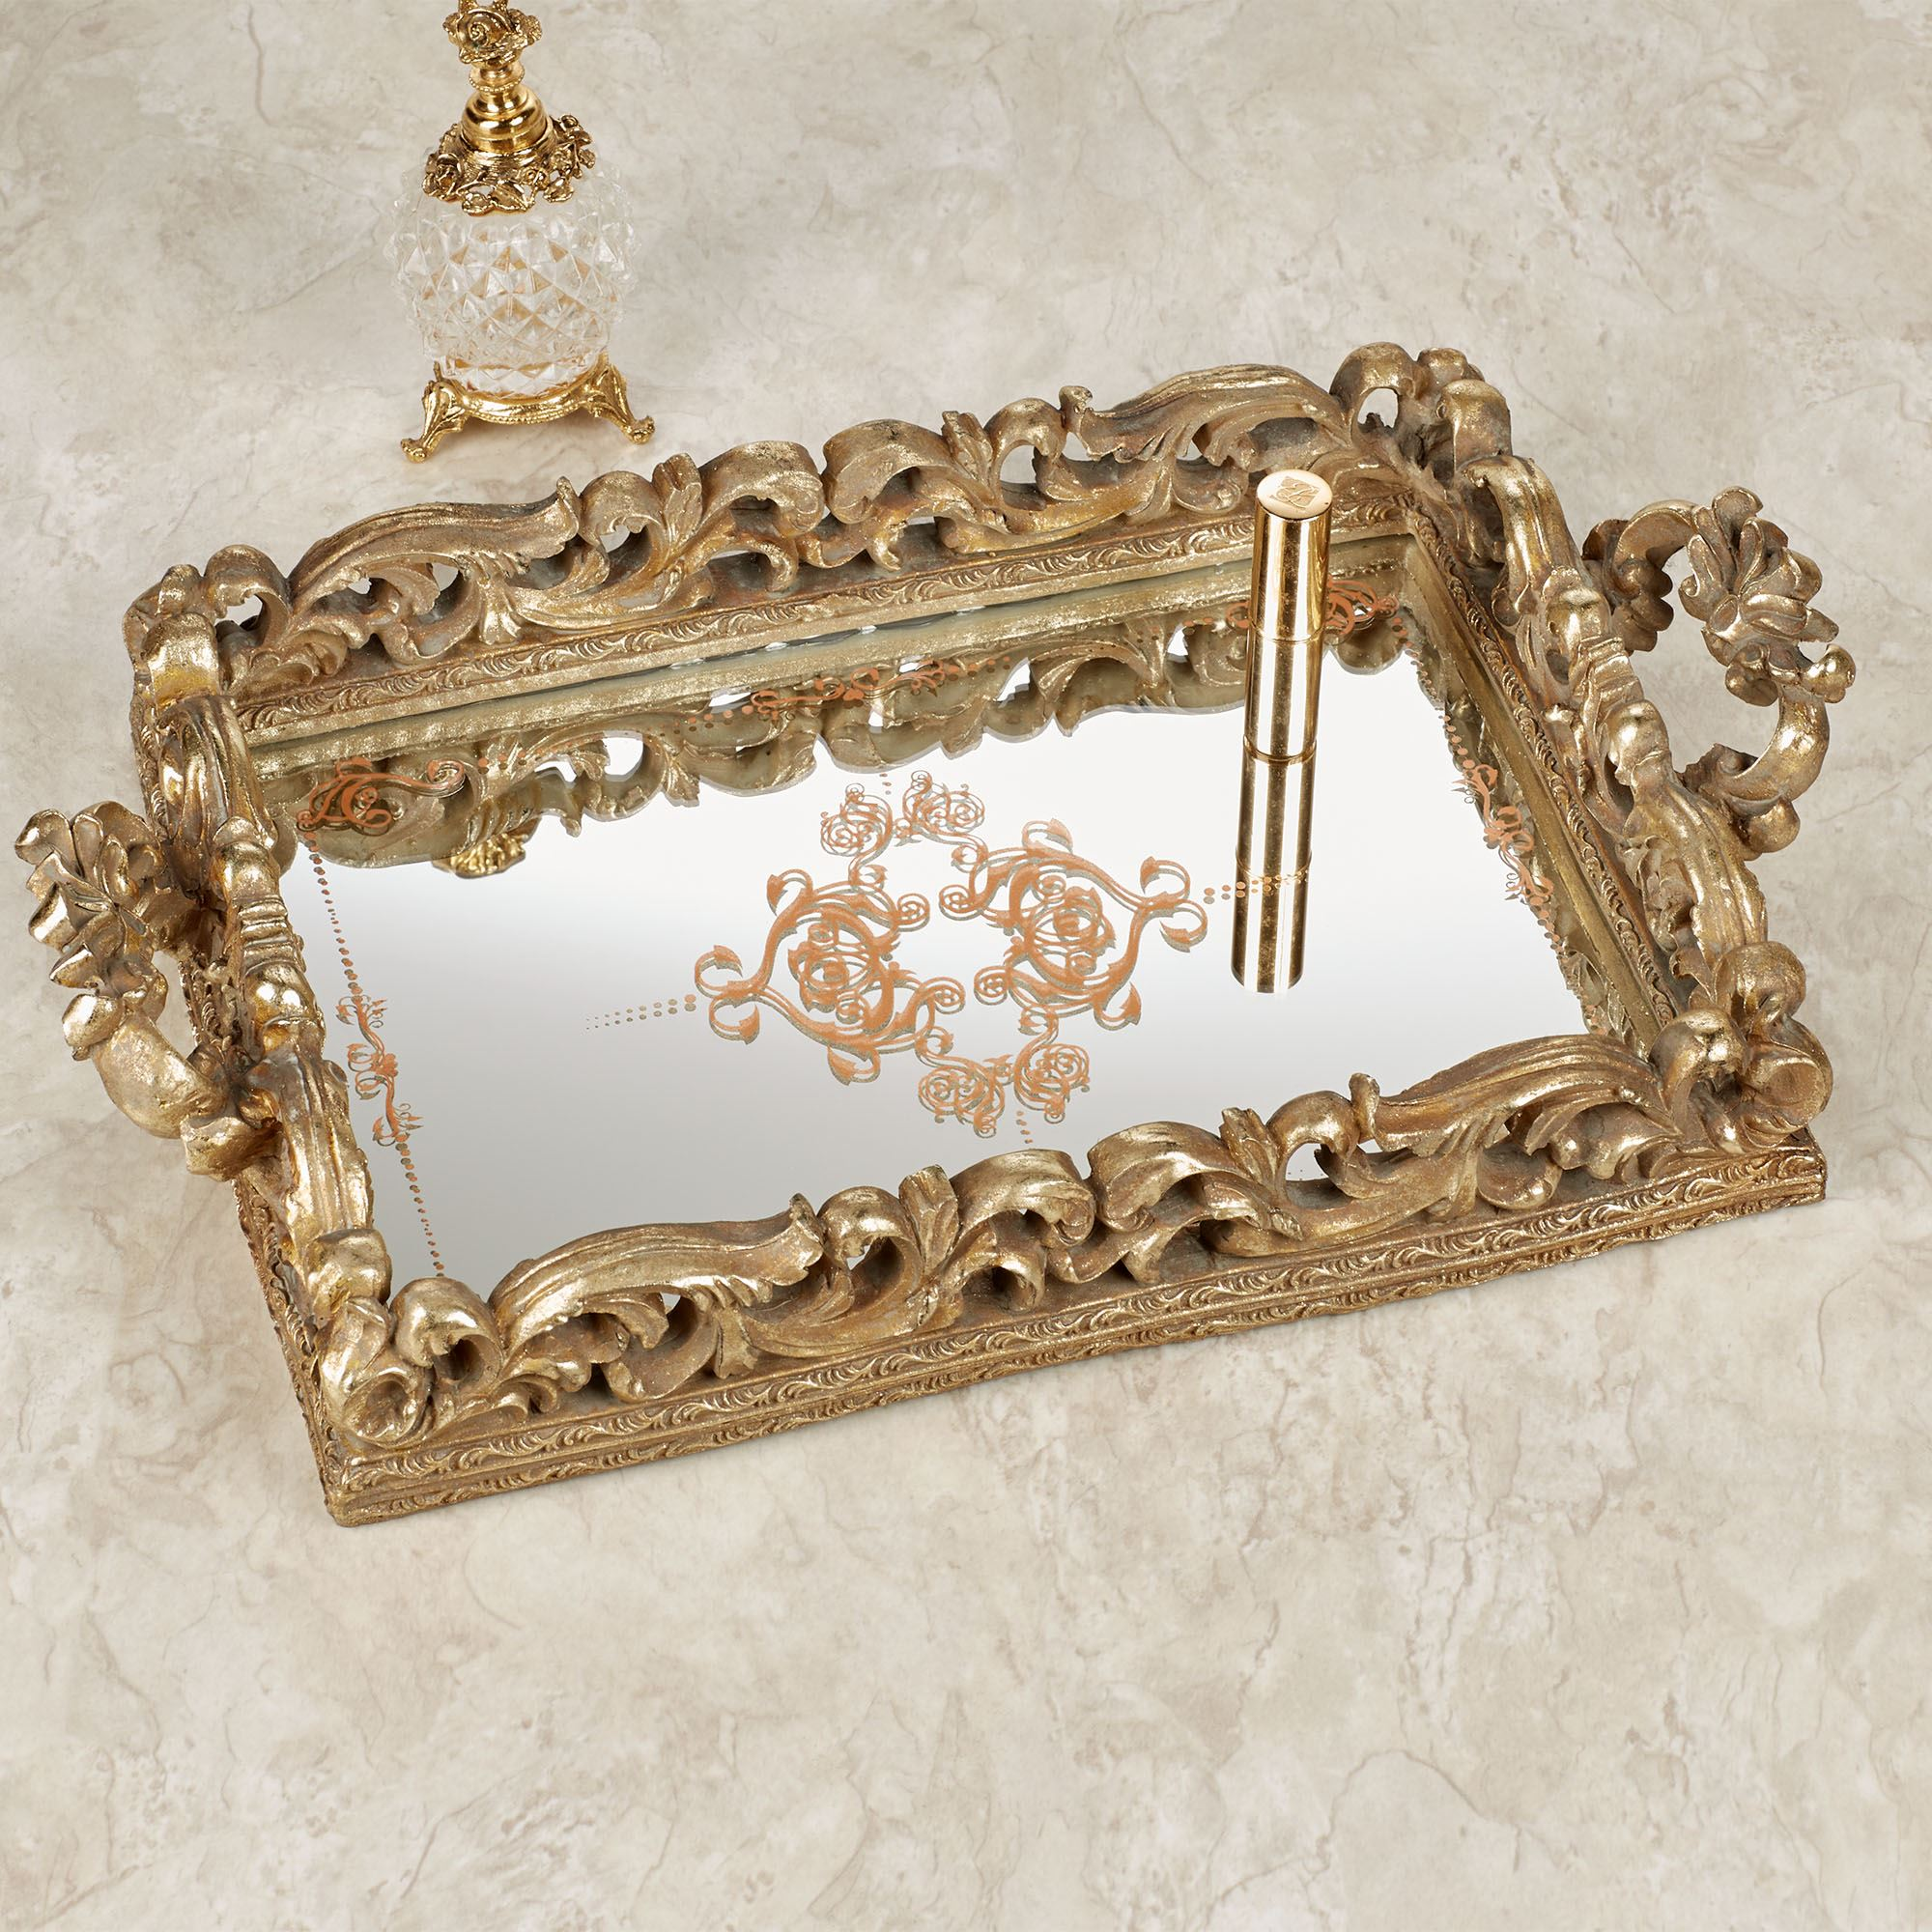 pdp joss reviews home mirrored sasha vanity decor main tray